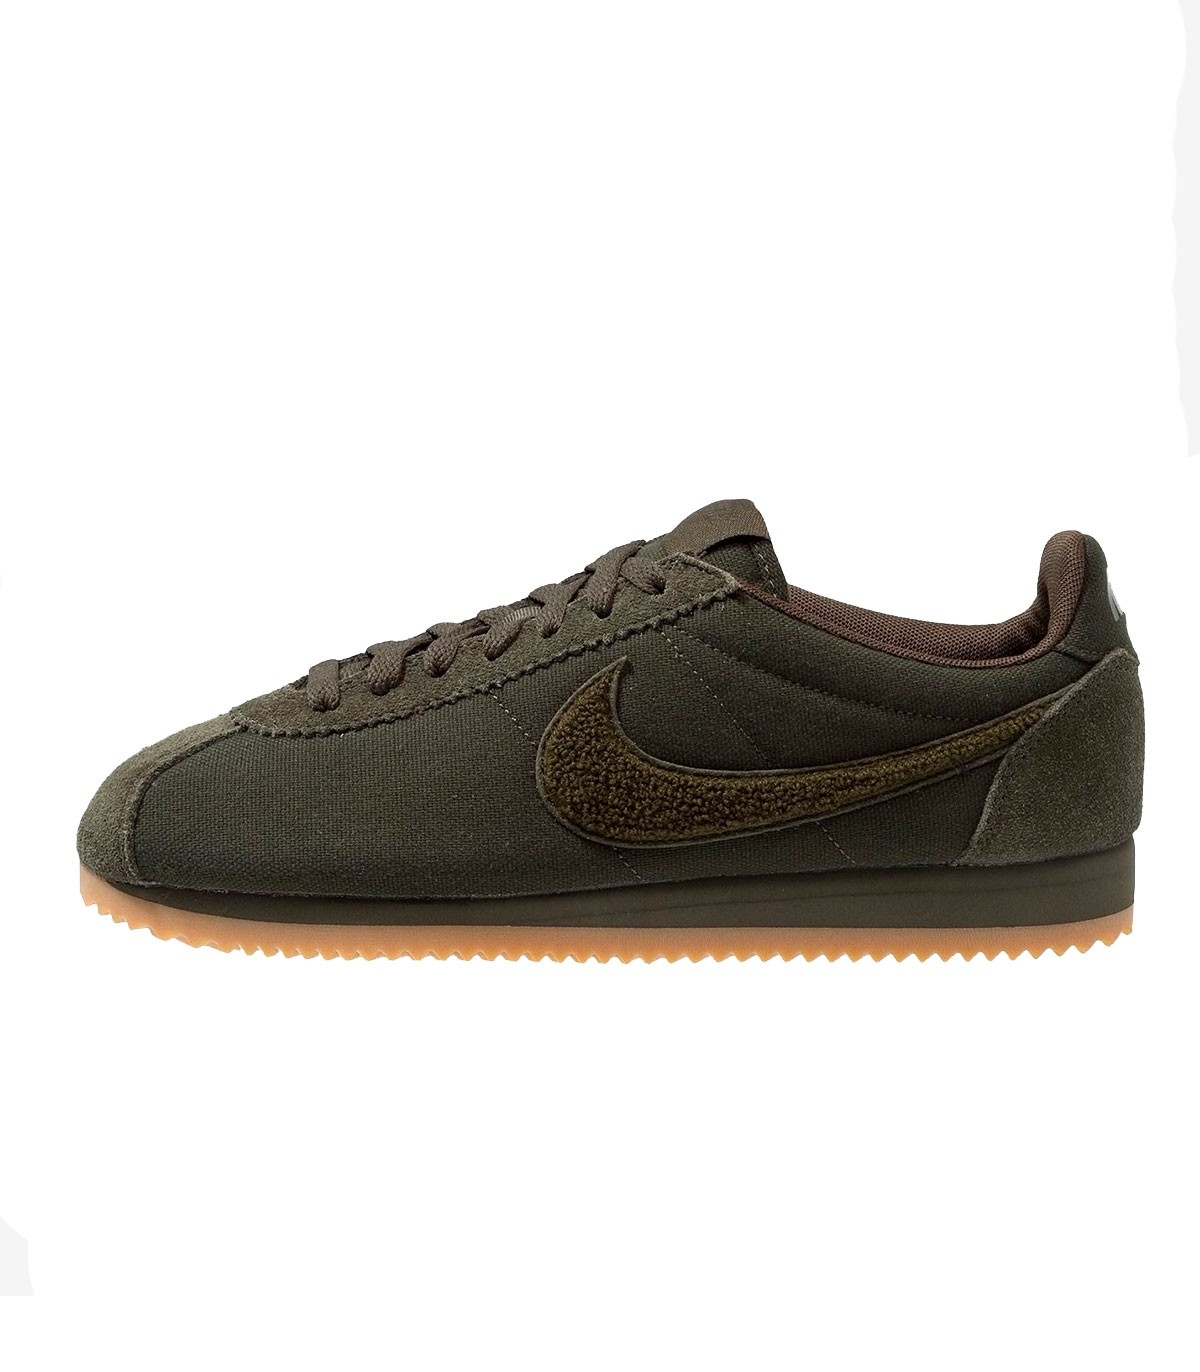 official photos 5deca 66672 Zapatillas Nike Classic Cortez SE